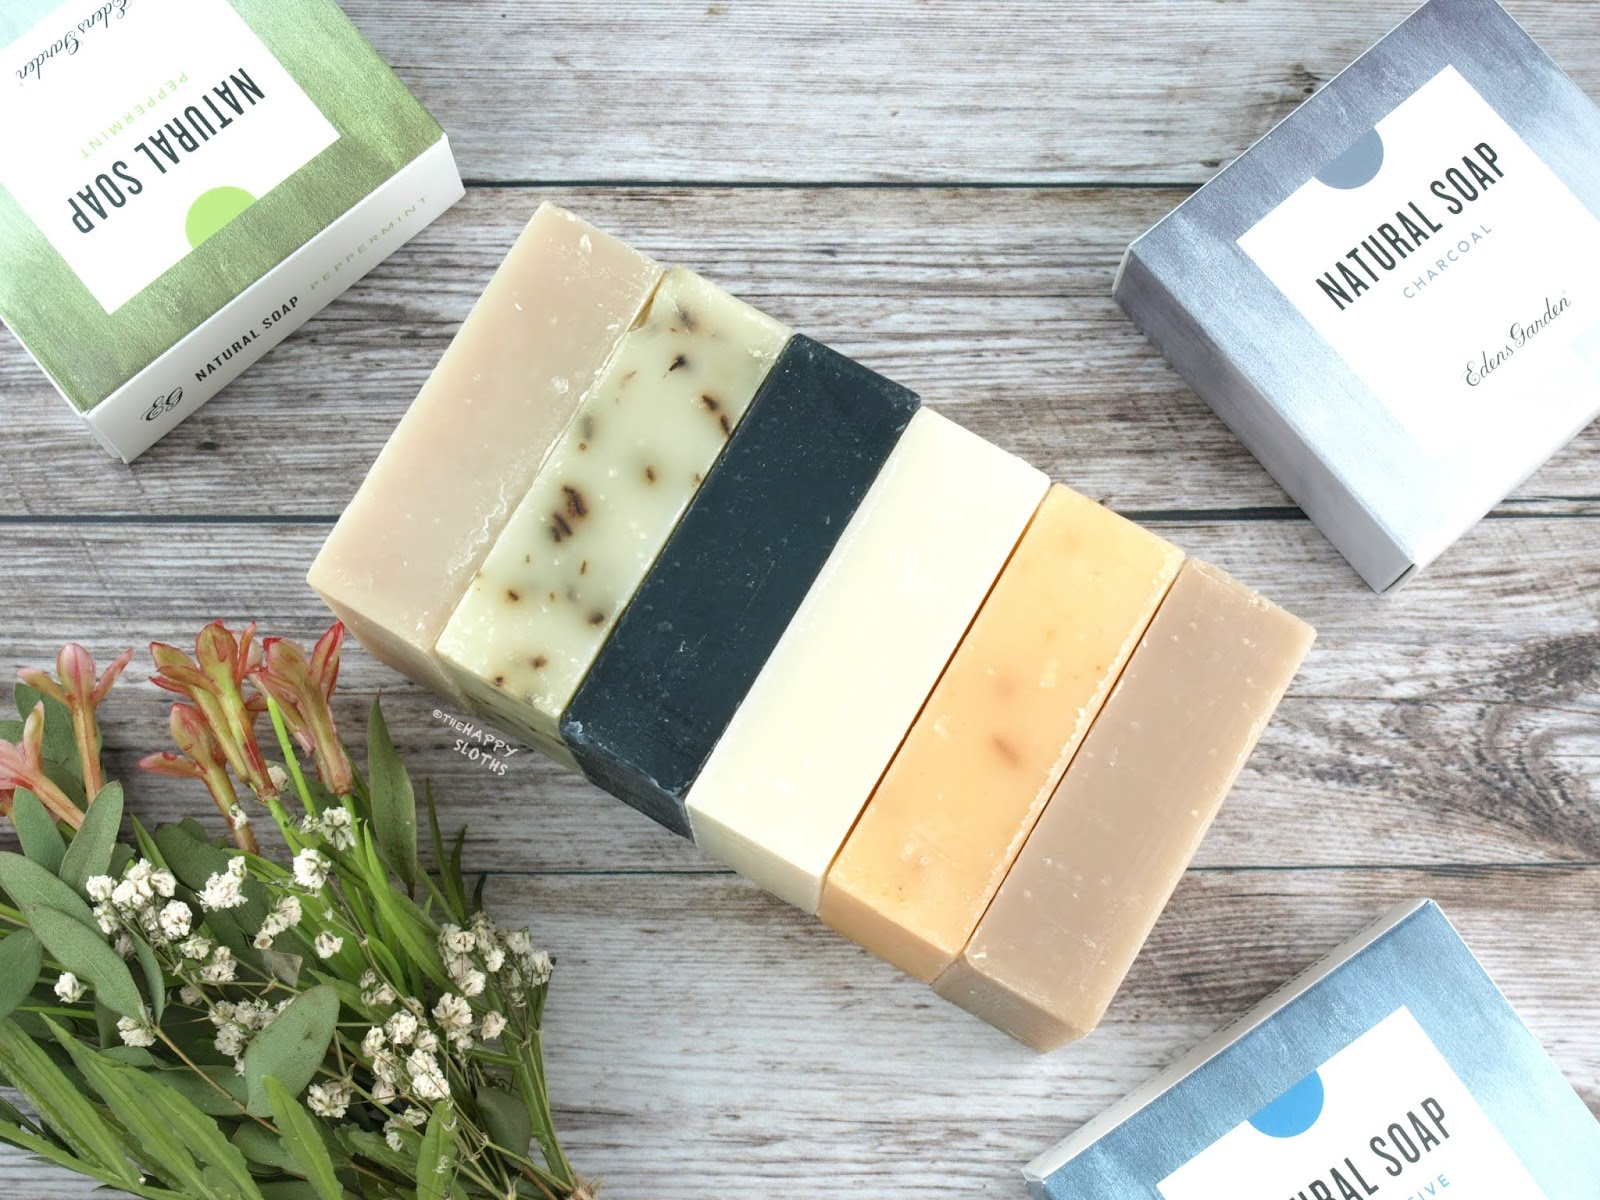 Edens Garden | Natural Bar Soap: Review